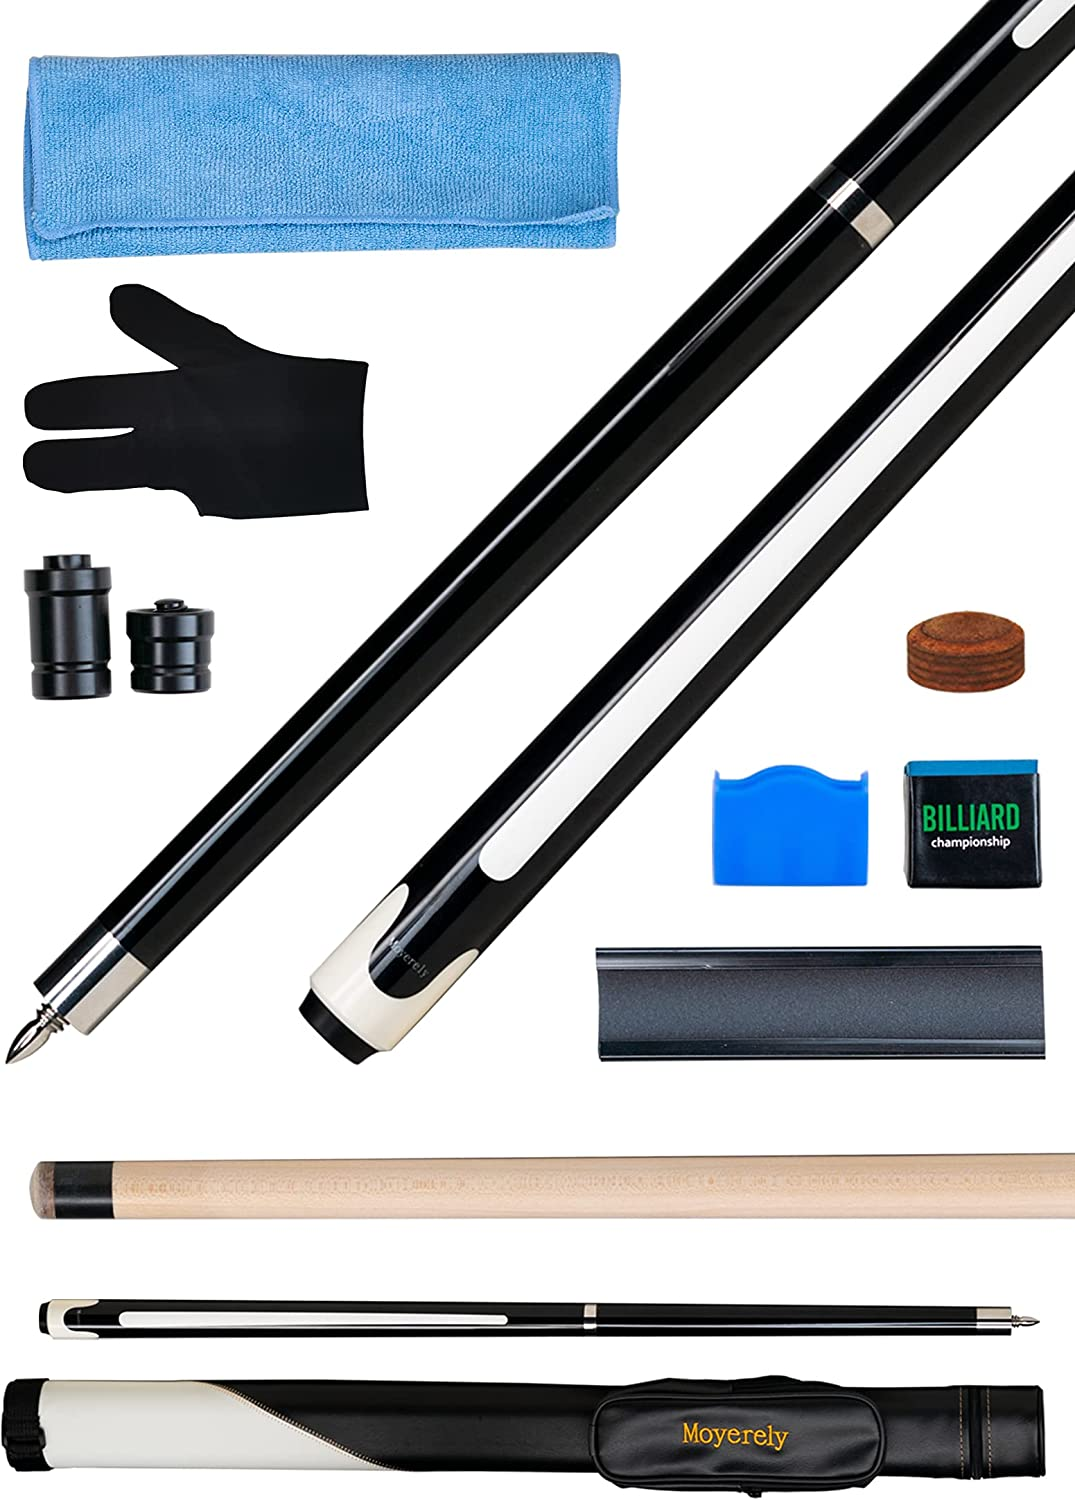 Moyerely Professional Pool Stick Cue 2021 Discount is also underway Inch 13mm 11.5mm 58 10mm